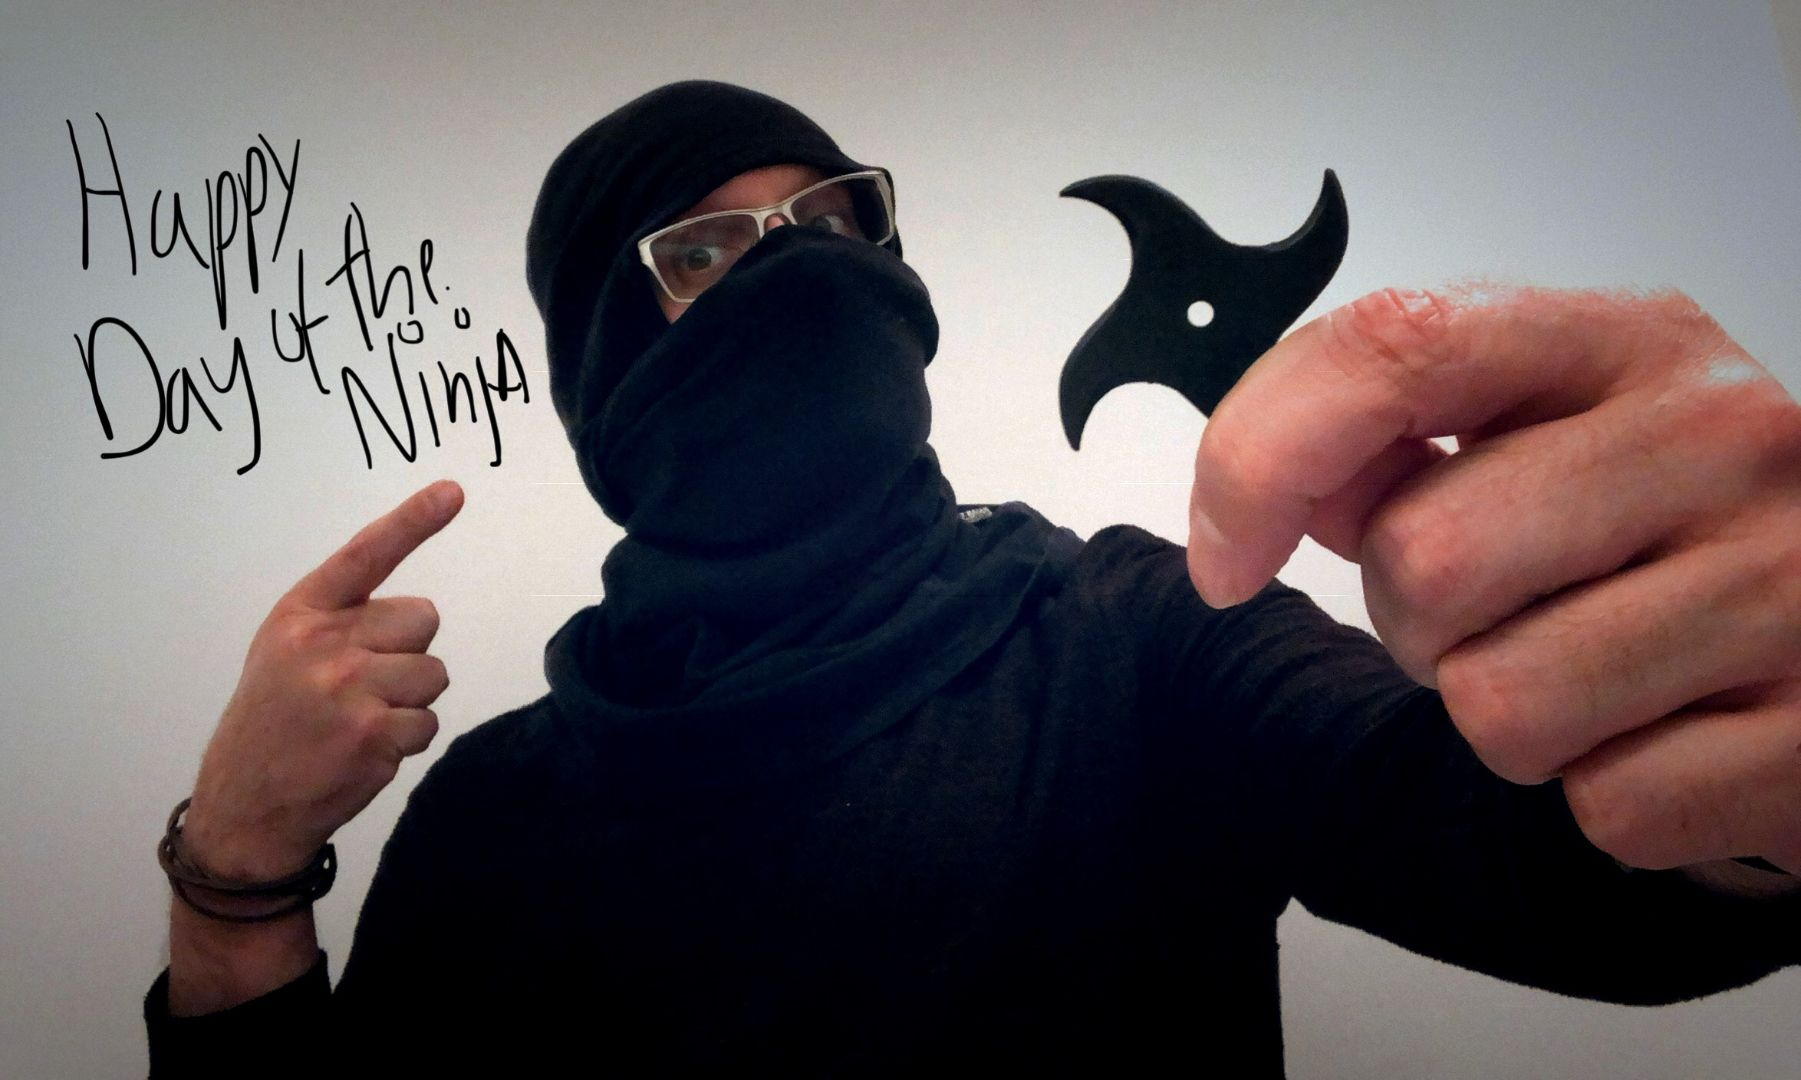 An authentic Ninja holding a Ninja star